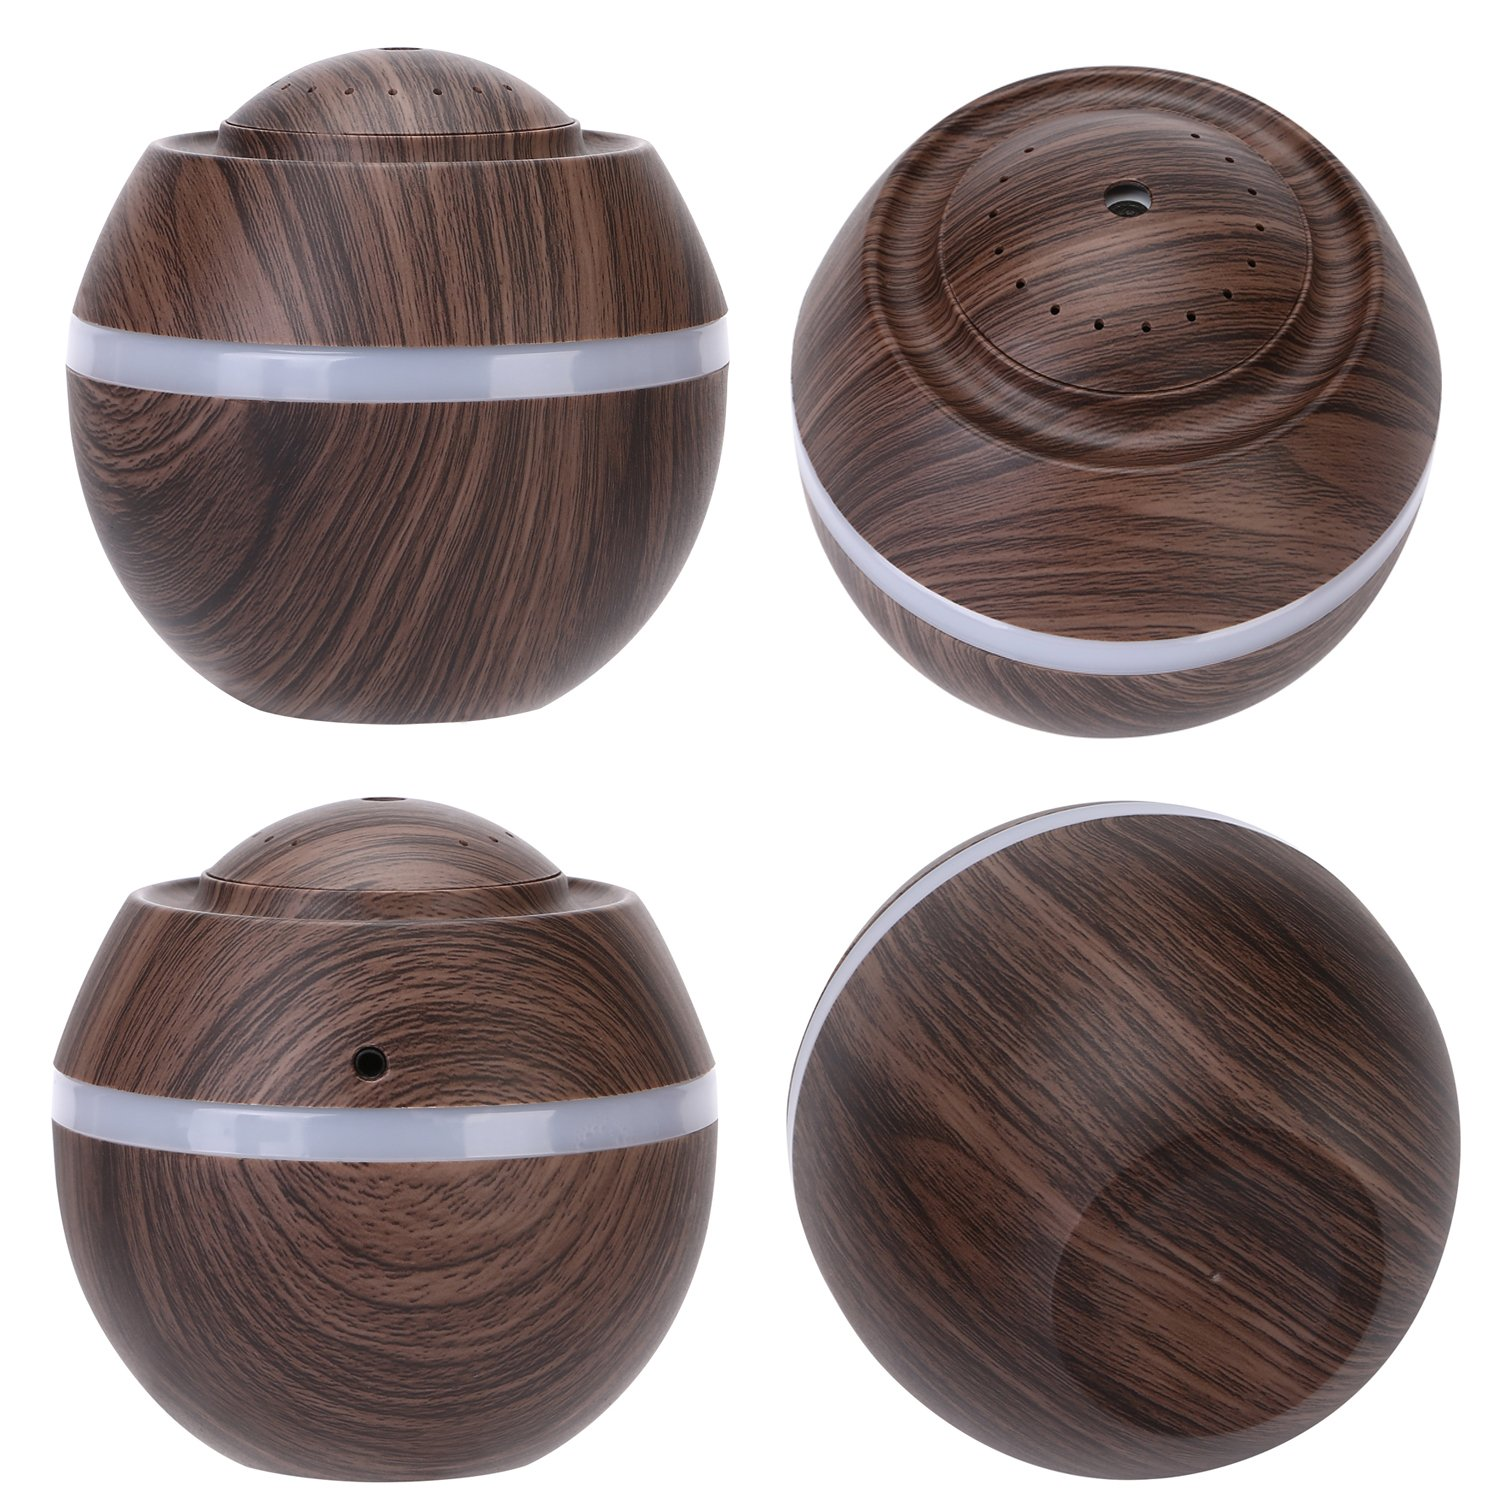 Cool Mist Humidifier Ultrasonic Aroma Essential Oil Diffuser for Office Home Bedroom Living Room Study Yoga Spa - Wood Grain (Brown) by O'abazar (Image #4)